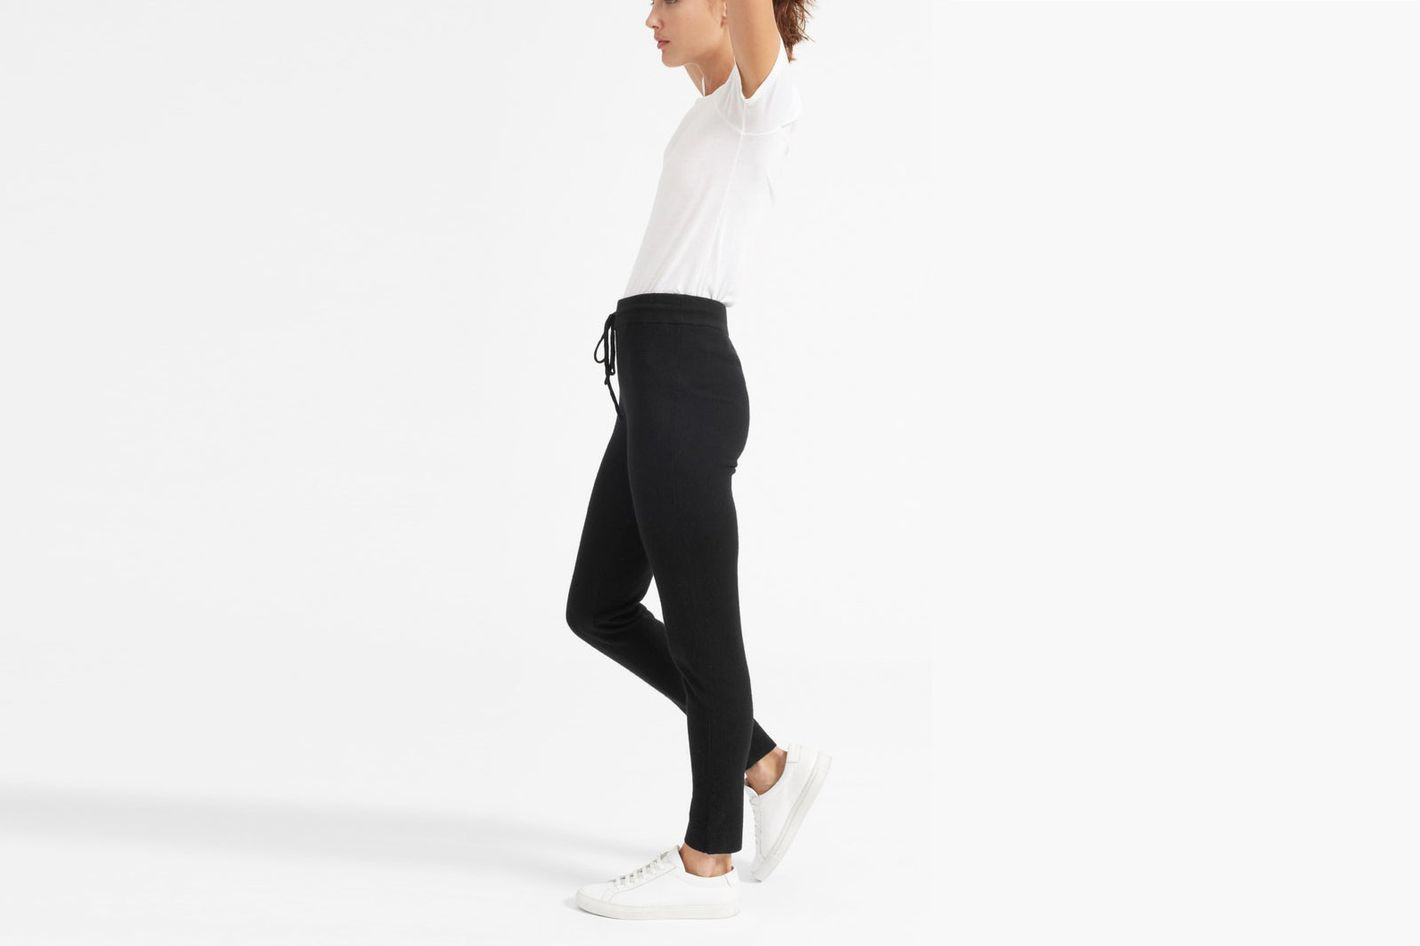 Everlane Cashmere Sweatpants